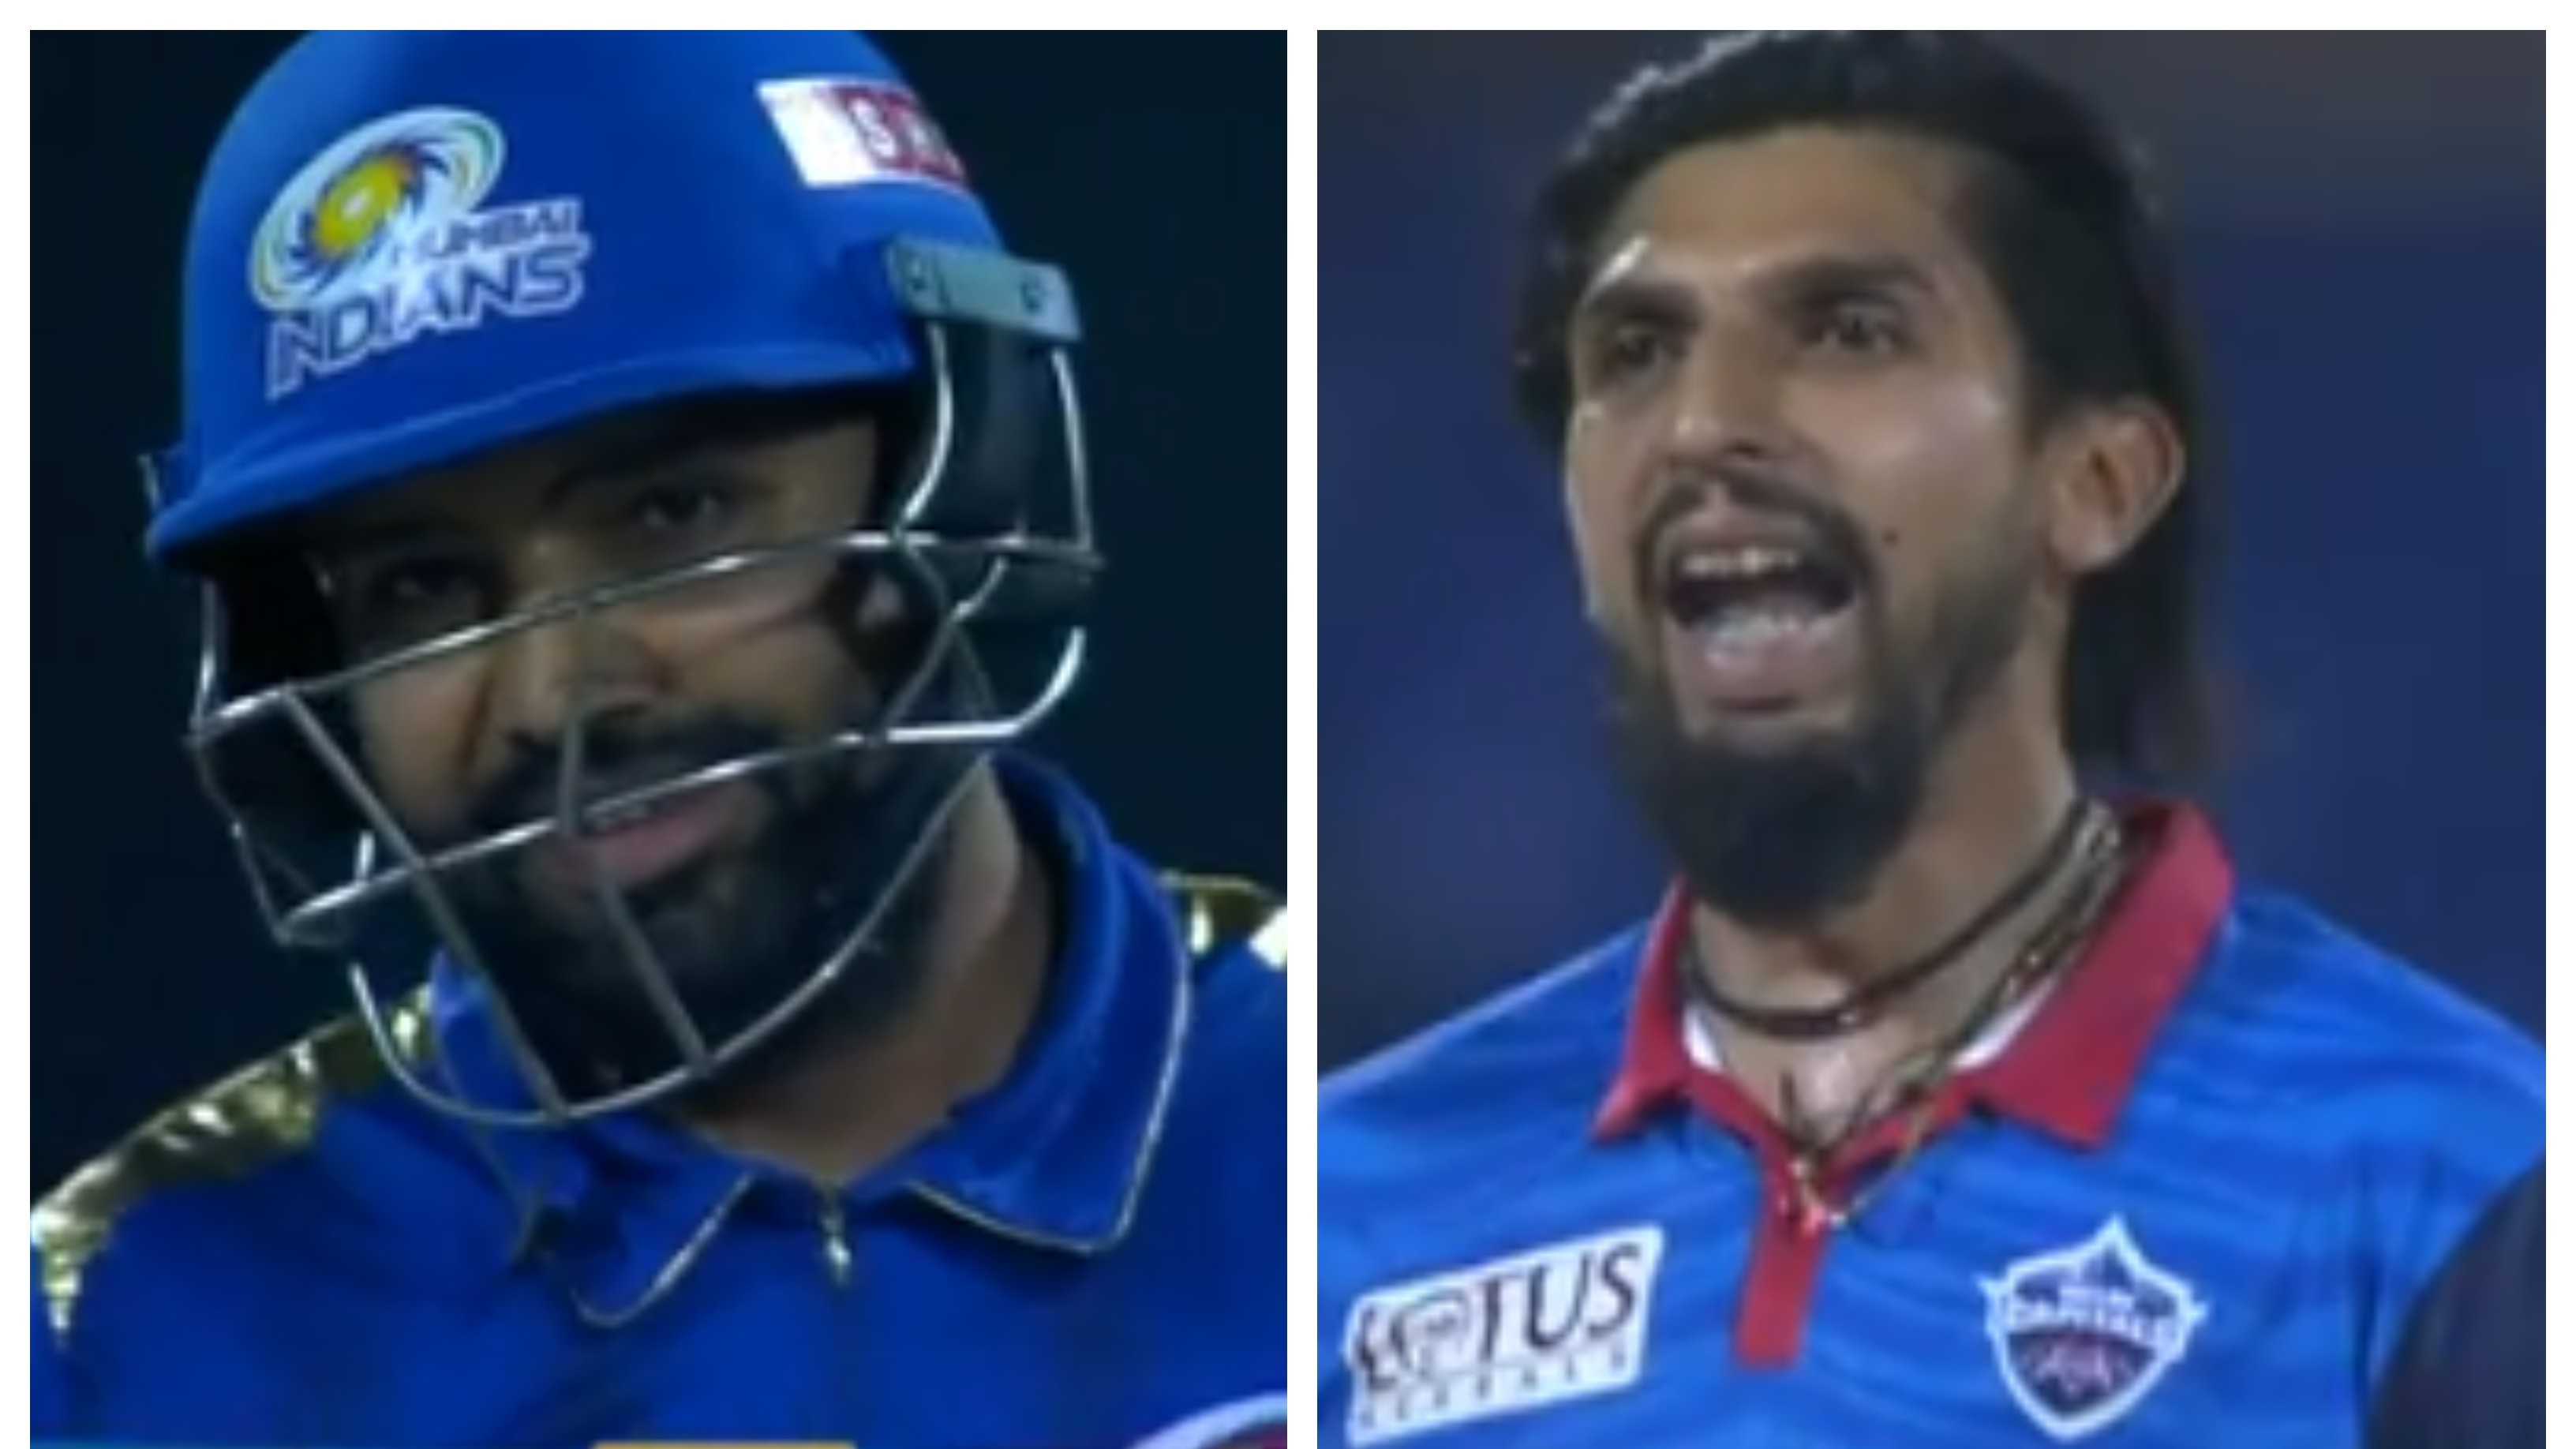 IPL 2019: WATCH – Ishant Sharma teases Rohit Sharma during Delhi Capitals' clash with Mumbai Indians